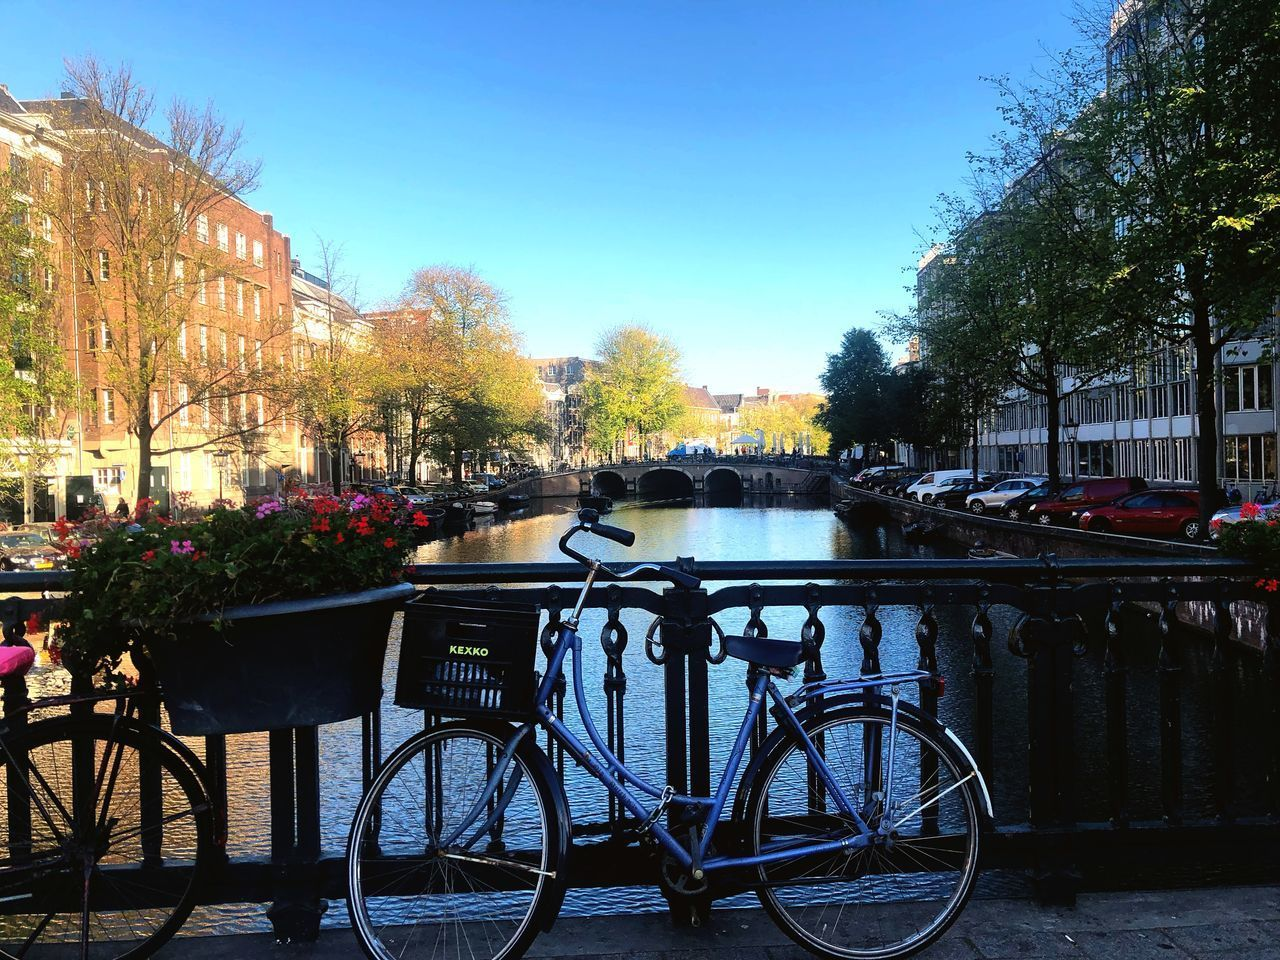 plant, tree, water, nature, transportation, mode of transportation, bicycle, architecture, land vehicle, sky, day, no people, built structure, canal, building exterior, railing, city, autumn, outdoors, change